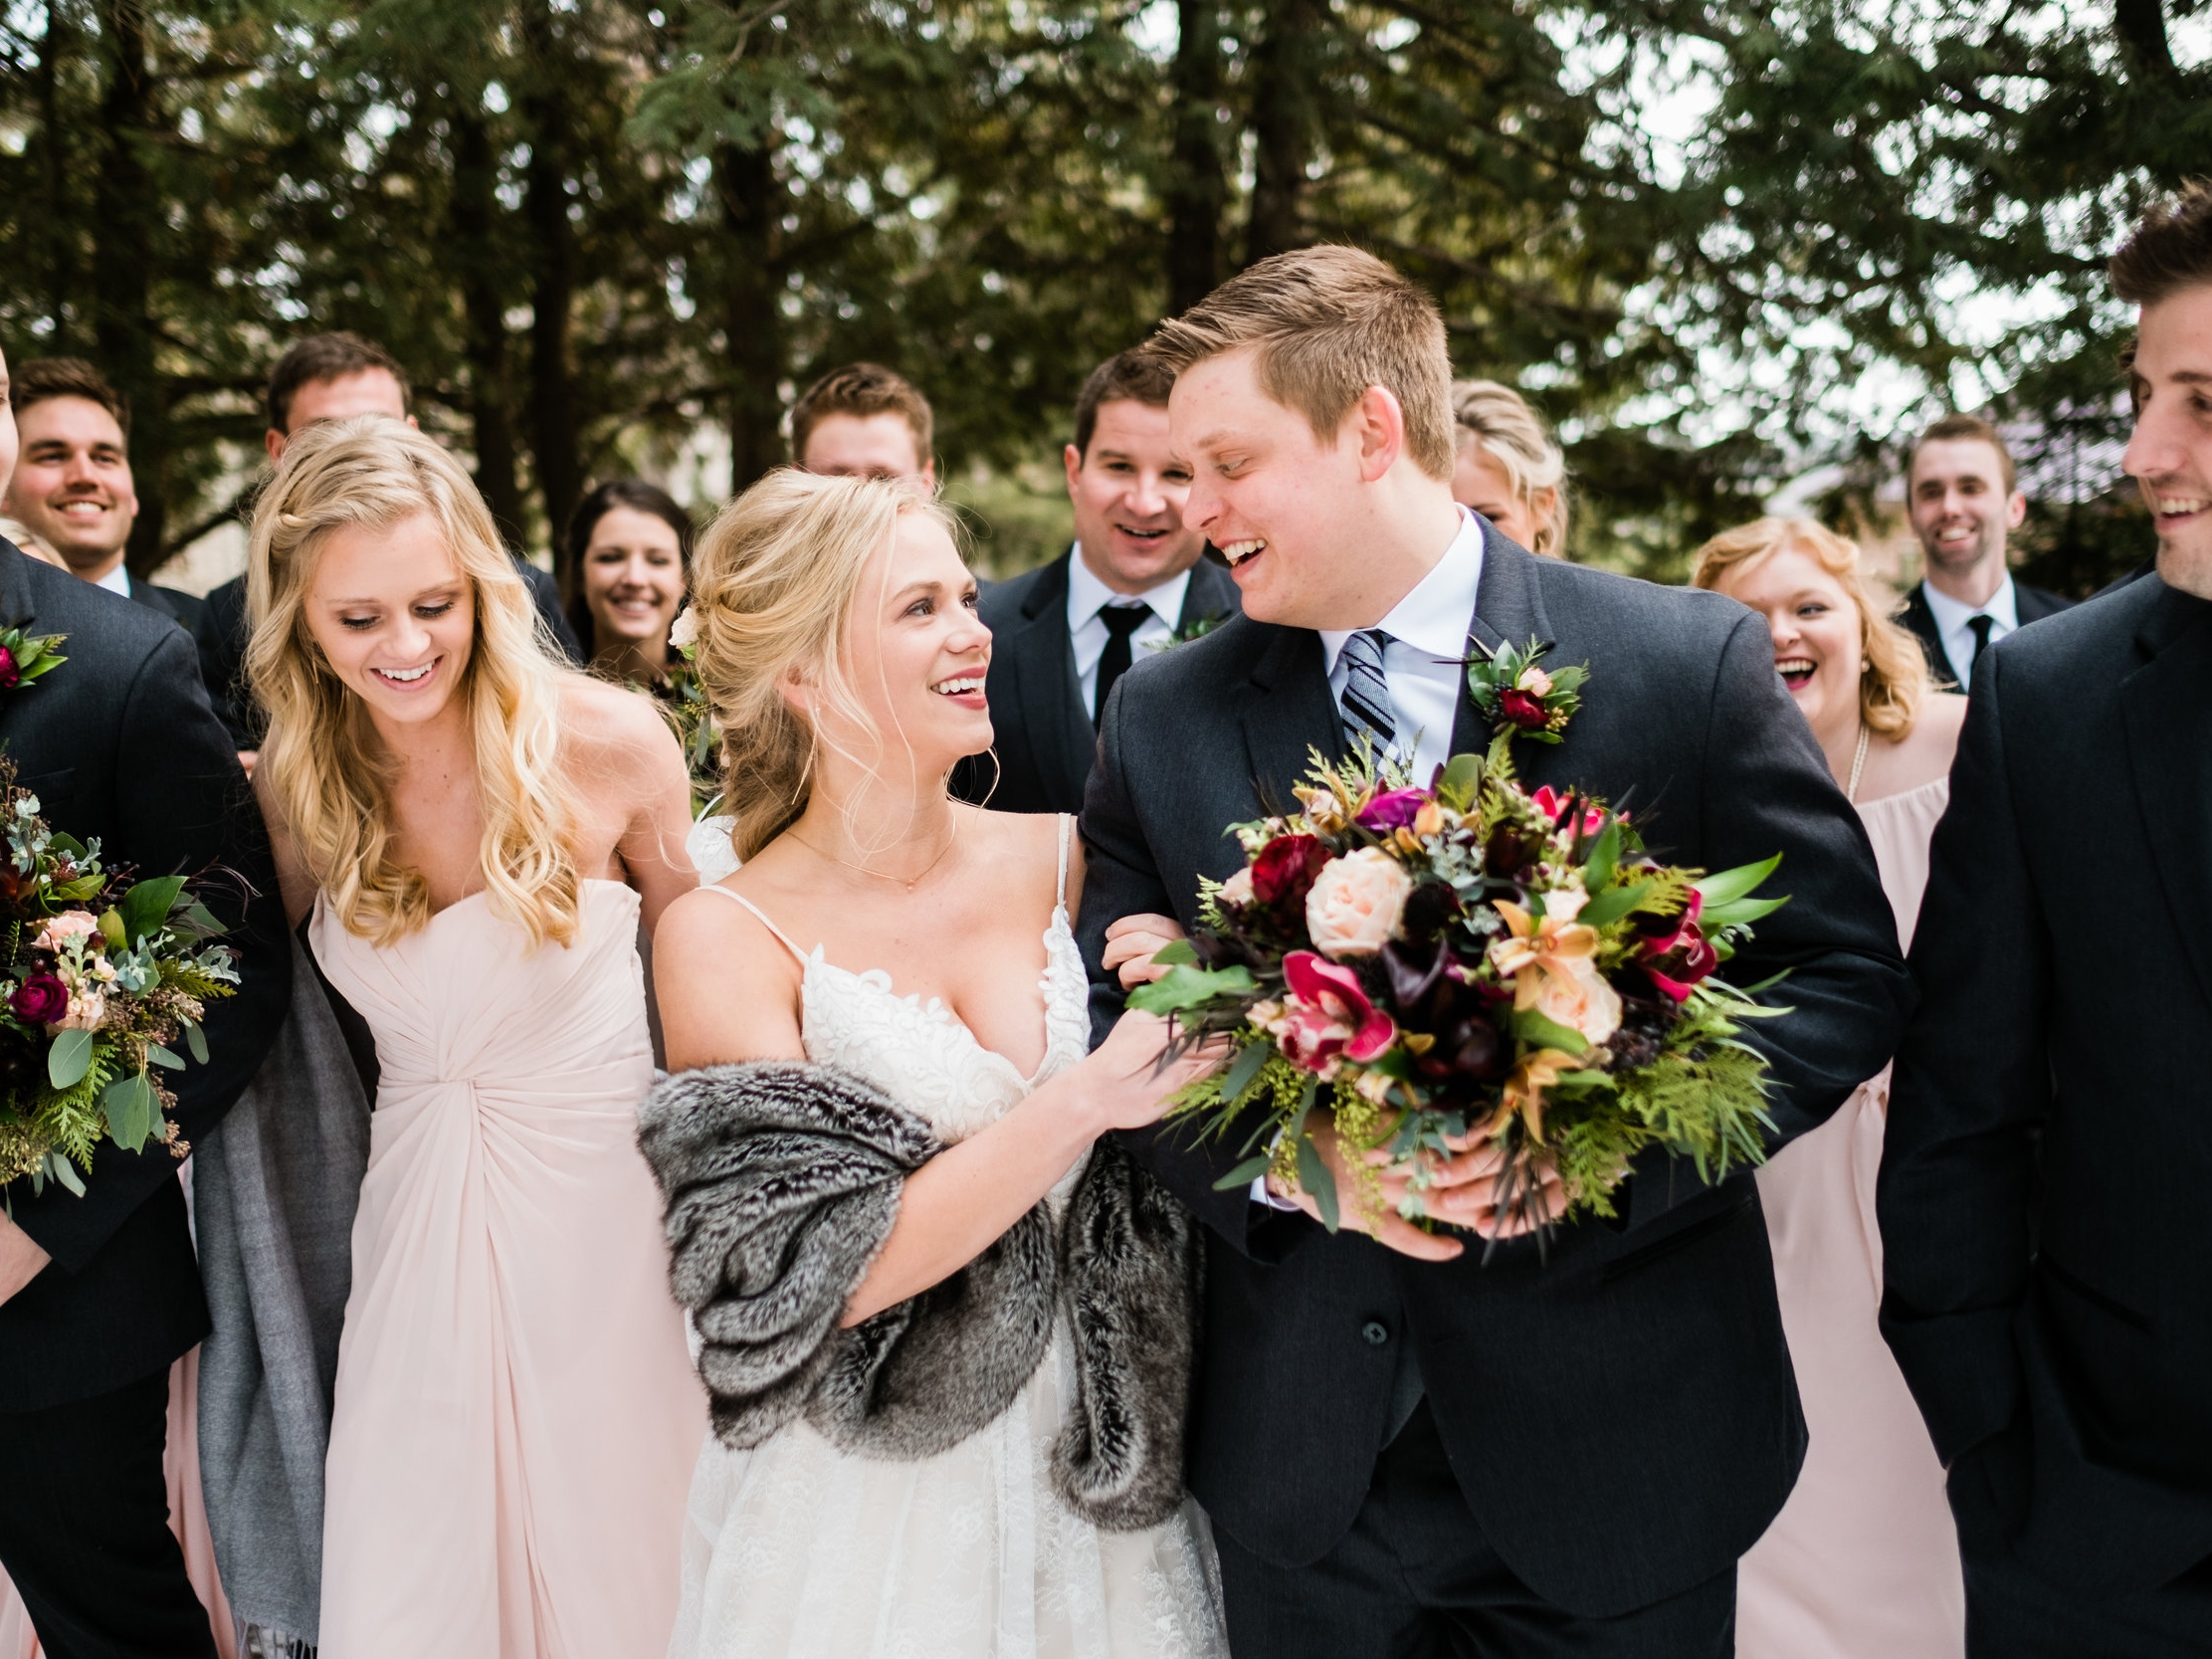 wedding party images at pine peaks event center